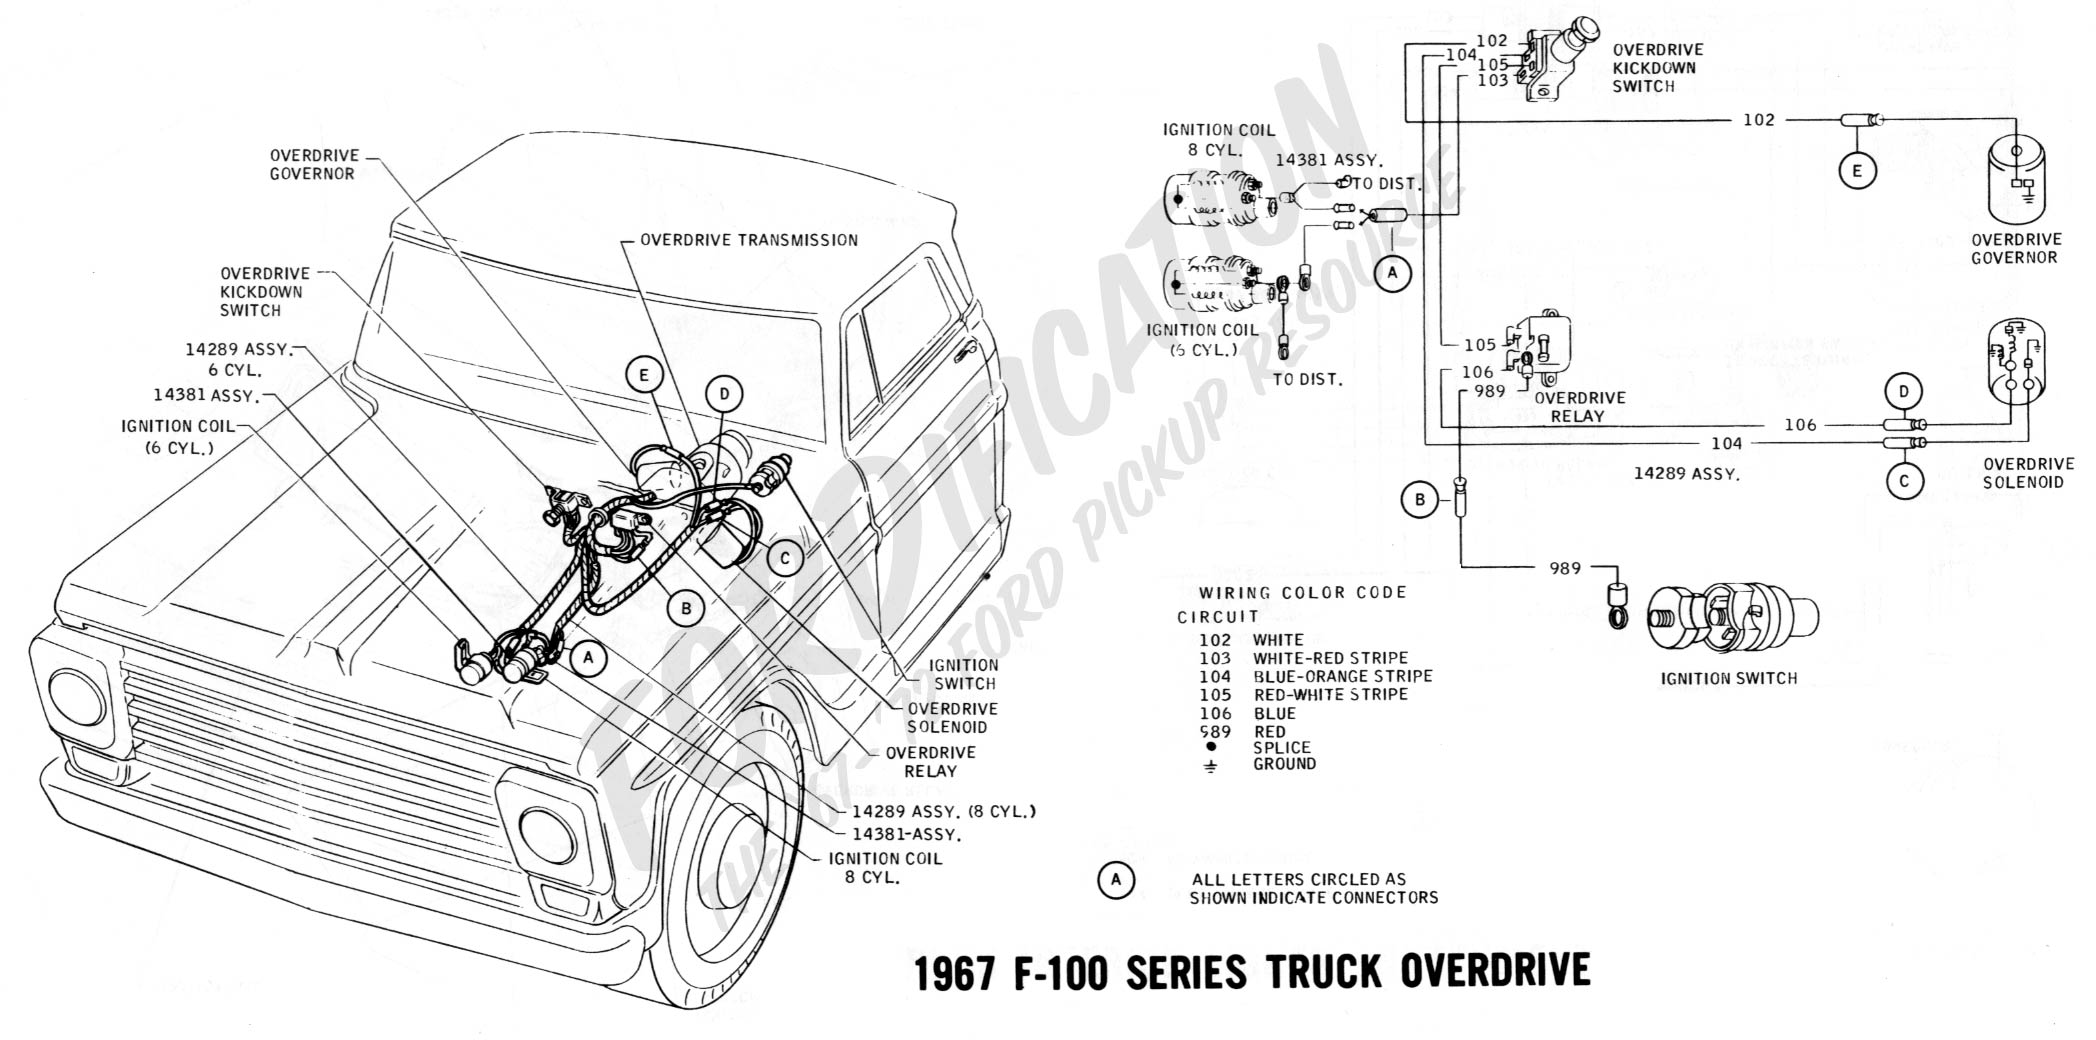 wiring 1967overdrive2 ford truck technical drawings and schematics section h wiring Ford Truck Wiring Harness at crackthecode.co